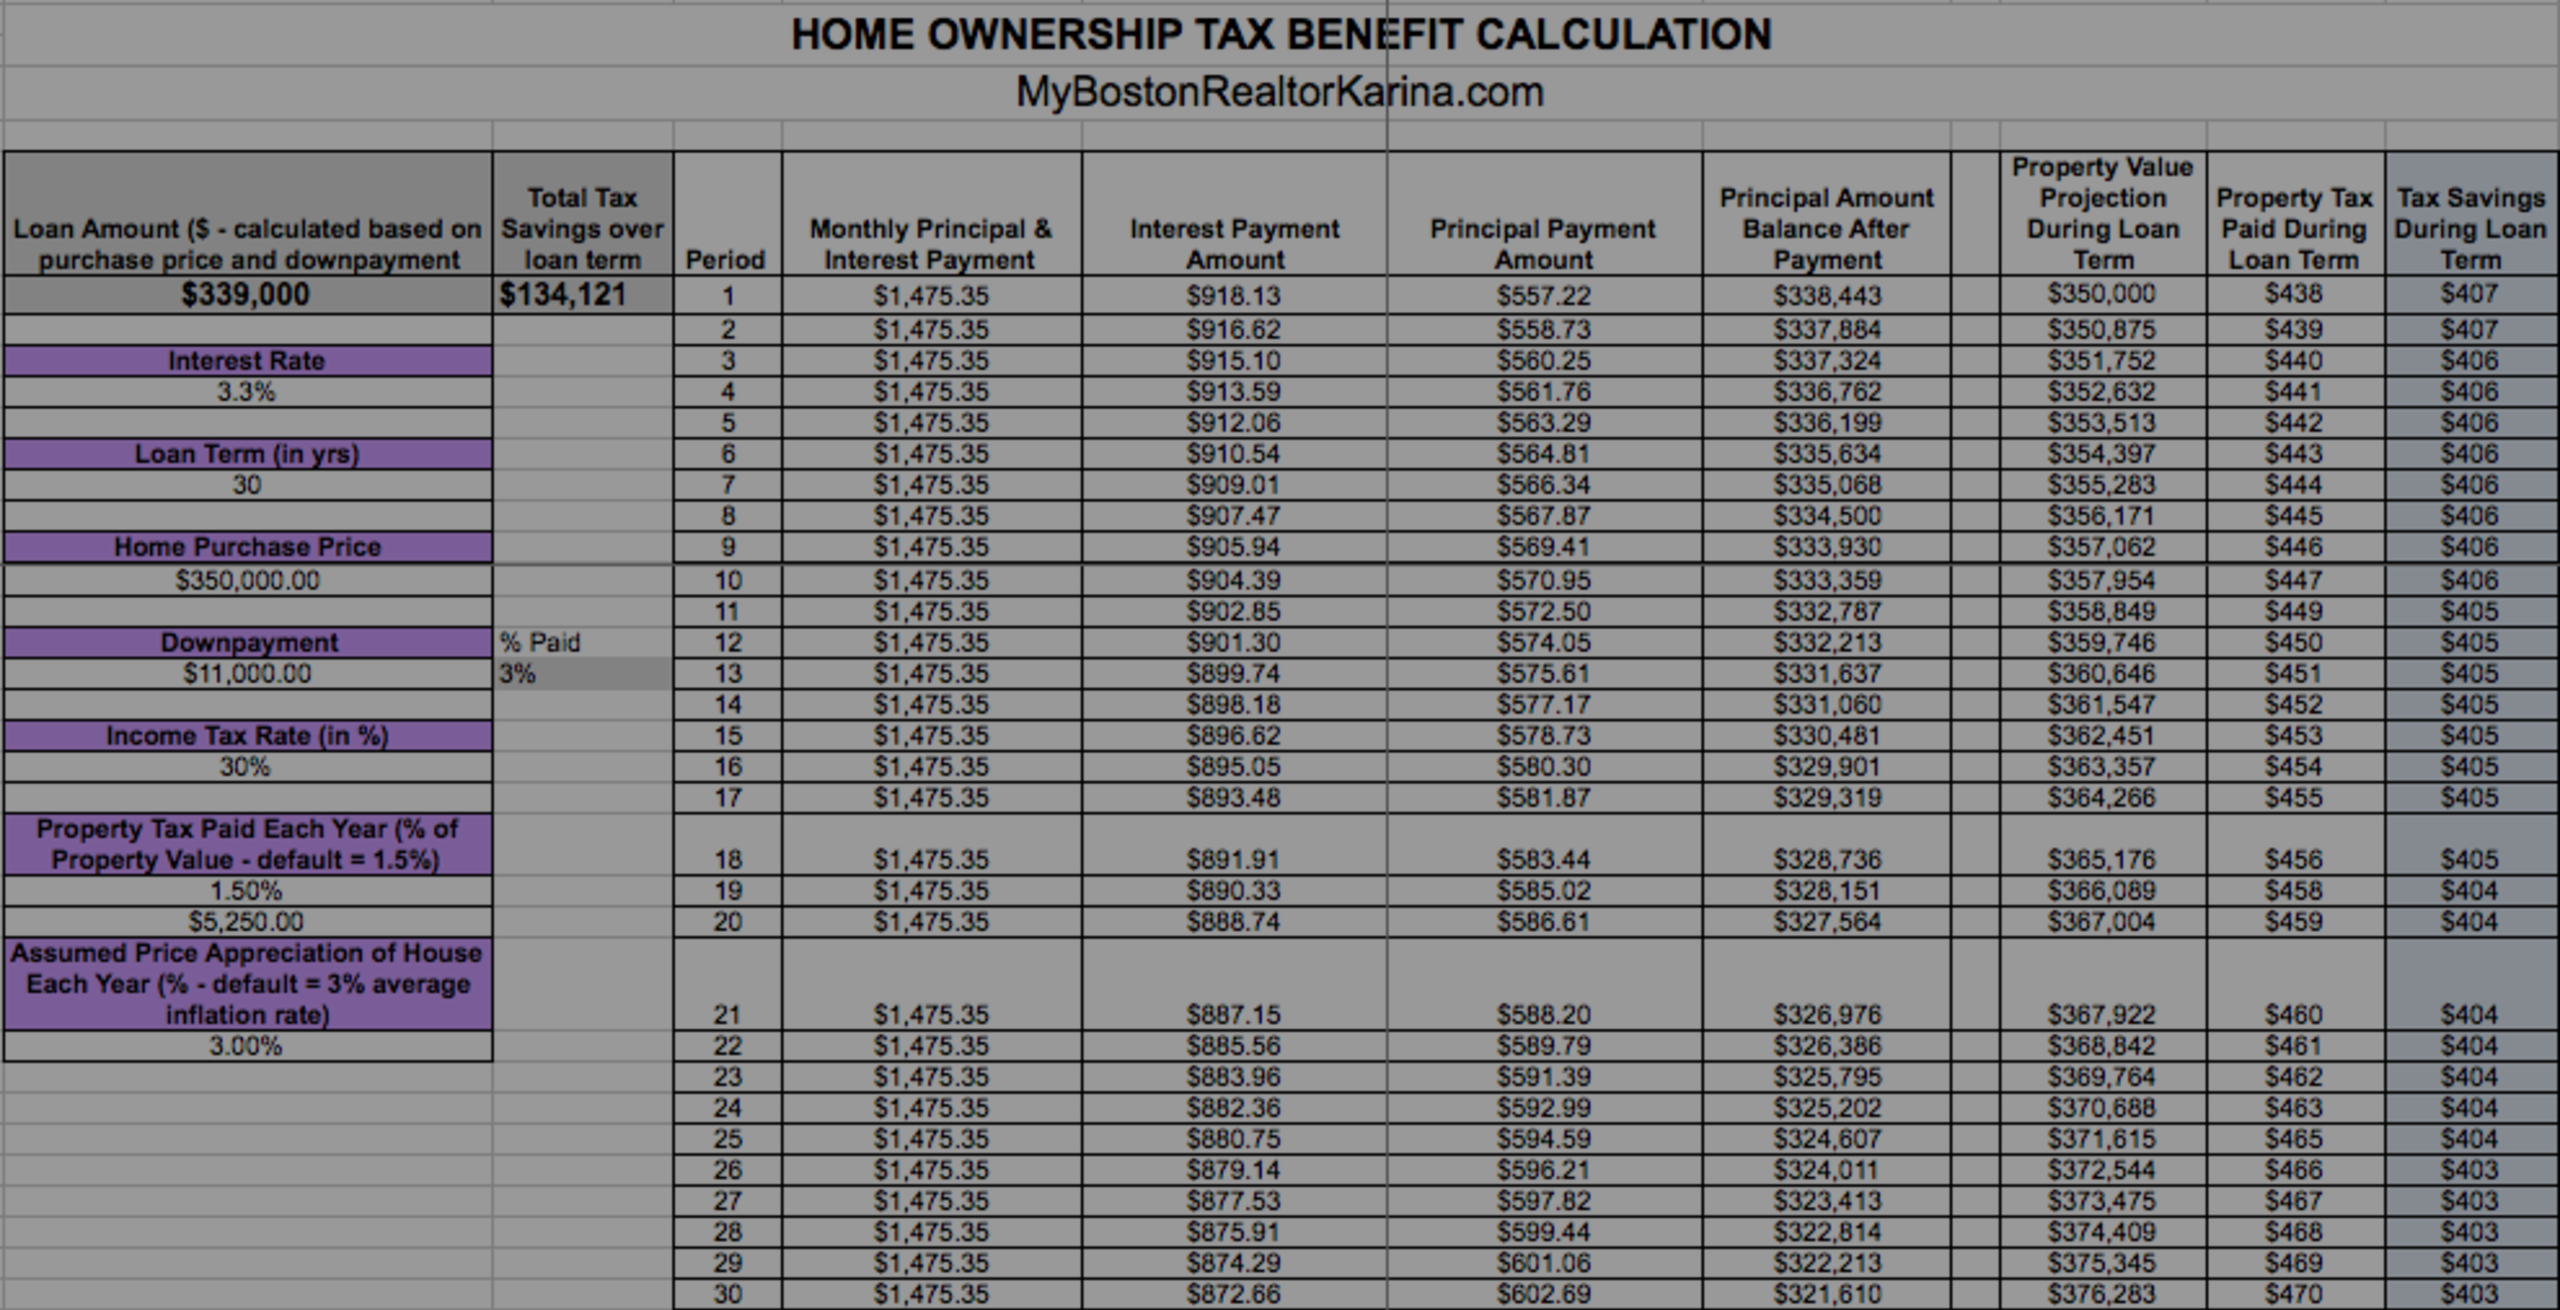 Calculating Home Ownership Tax Benefits